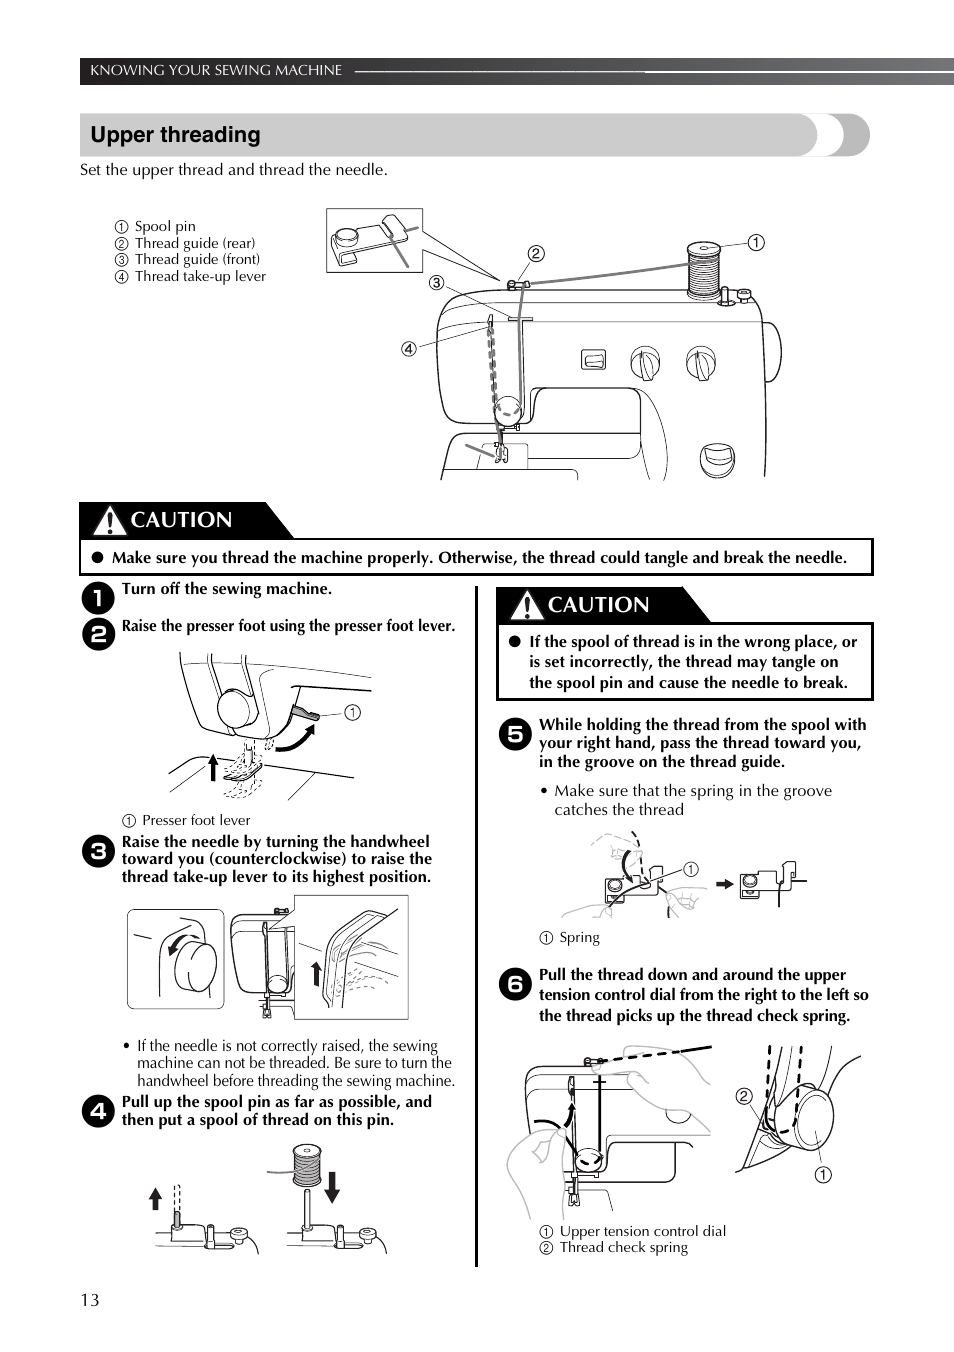 Upper Threading Caution Brother Lx2375 User Manual Page 14 96 Sewing Machine Diagram